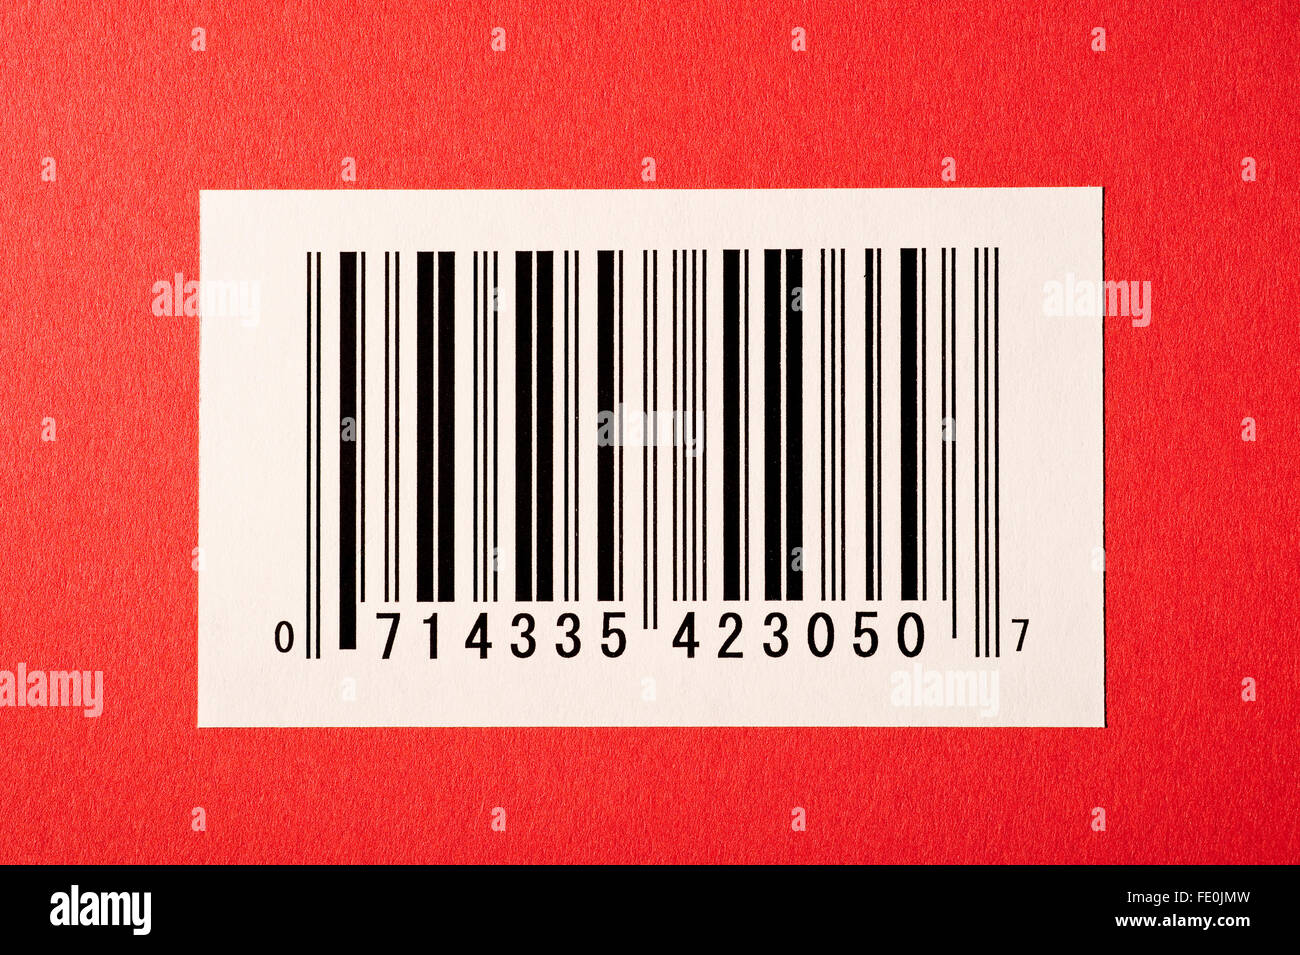 Bar Code On Red Textured Background - Stock Image